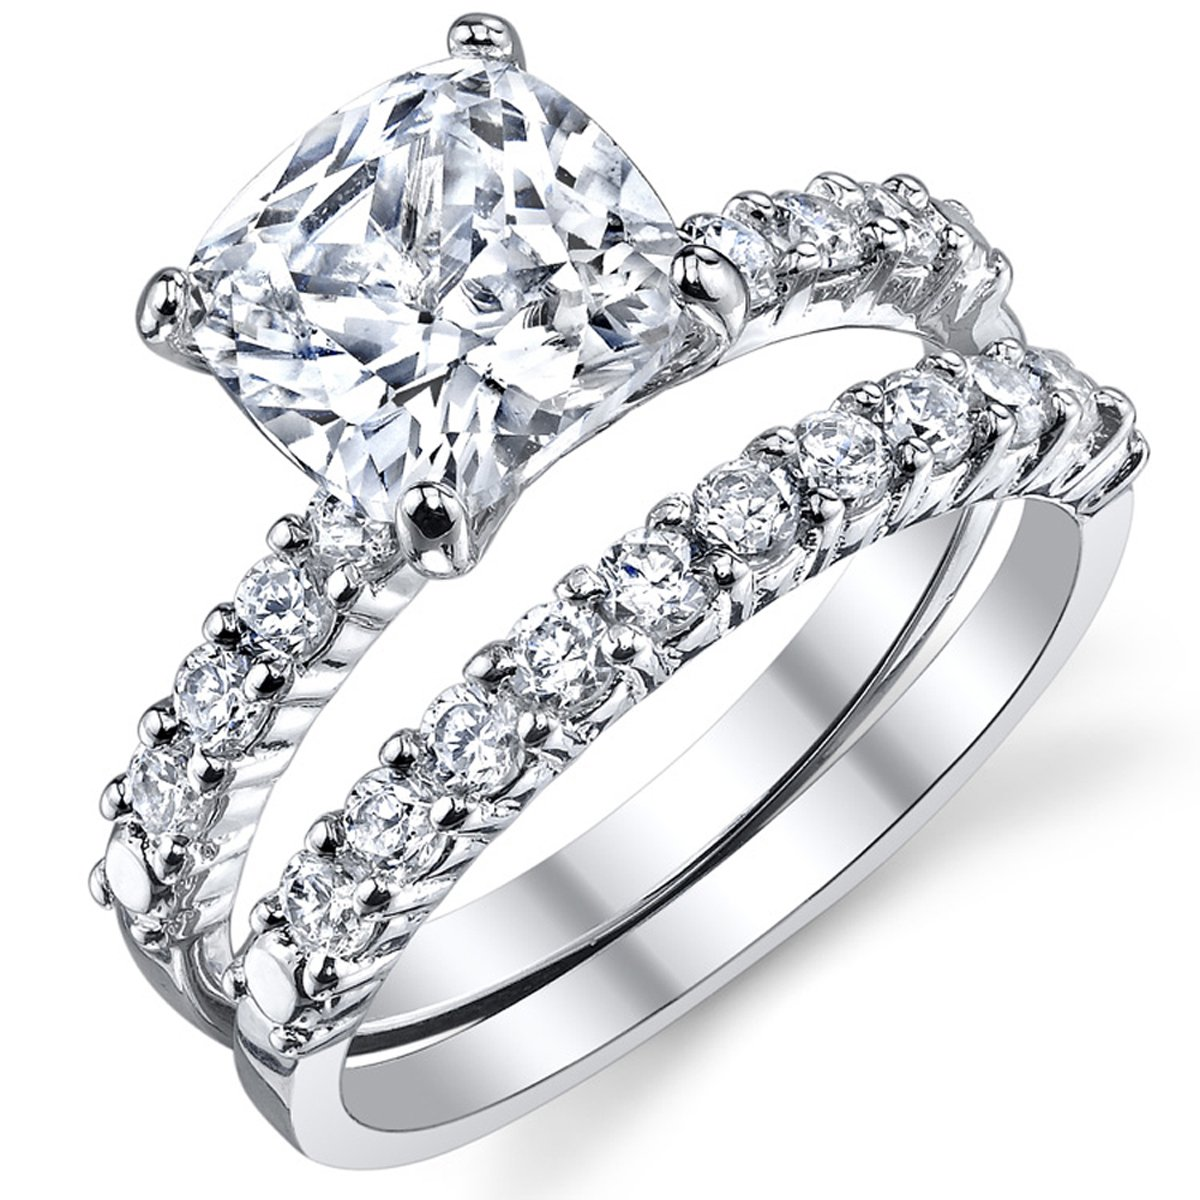 Fabulous Cushion Cut Cubic Zirconia Sterling Silver 925 Wedding Engagement Ring Band Set 6